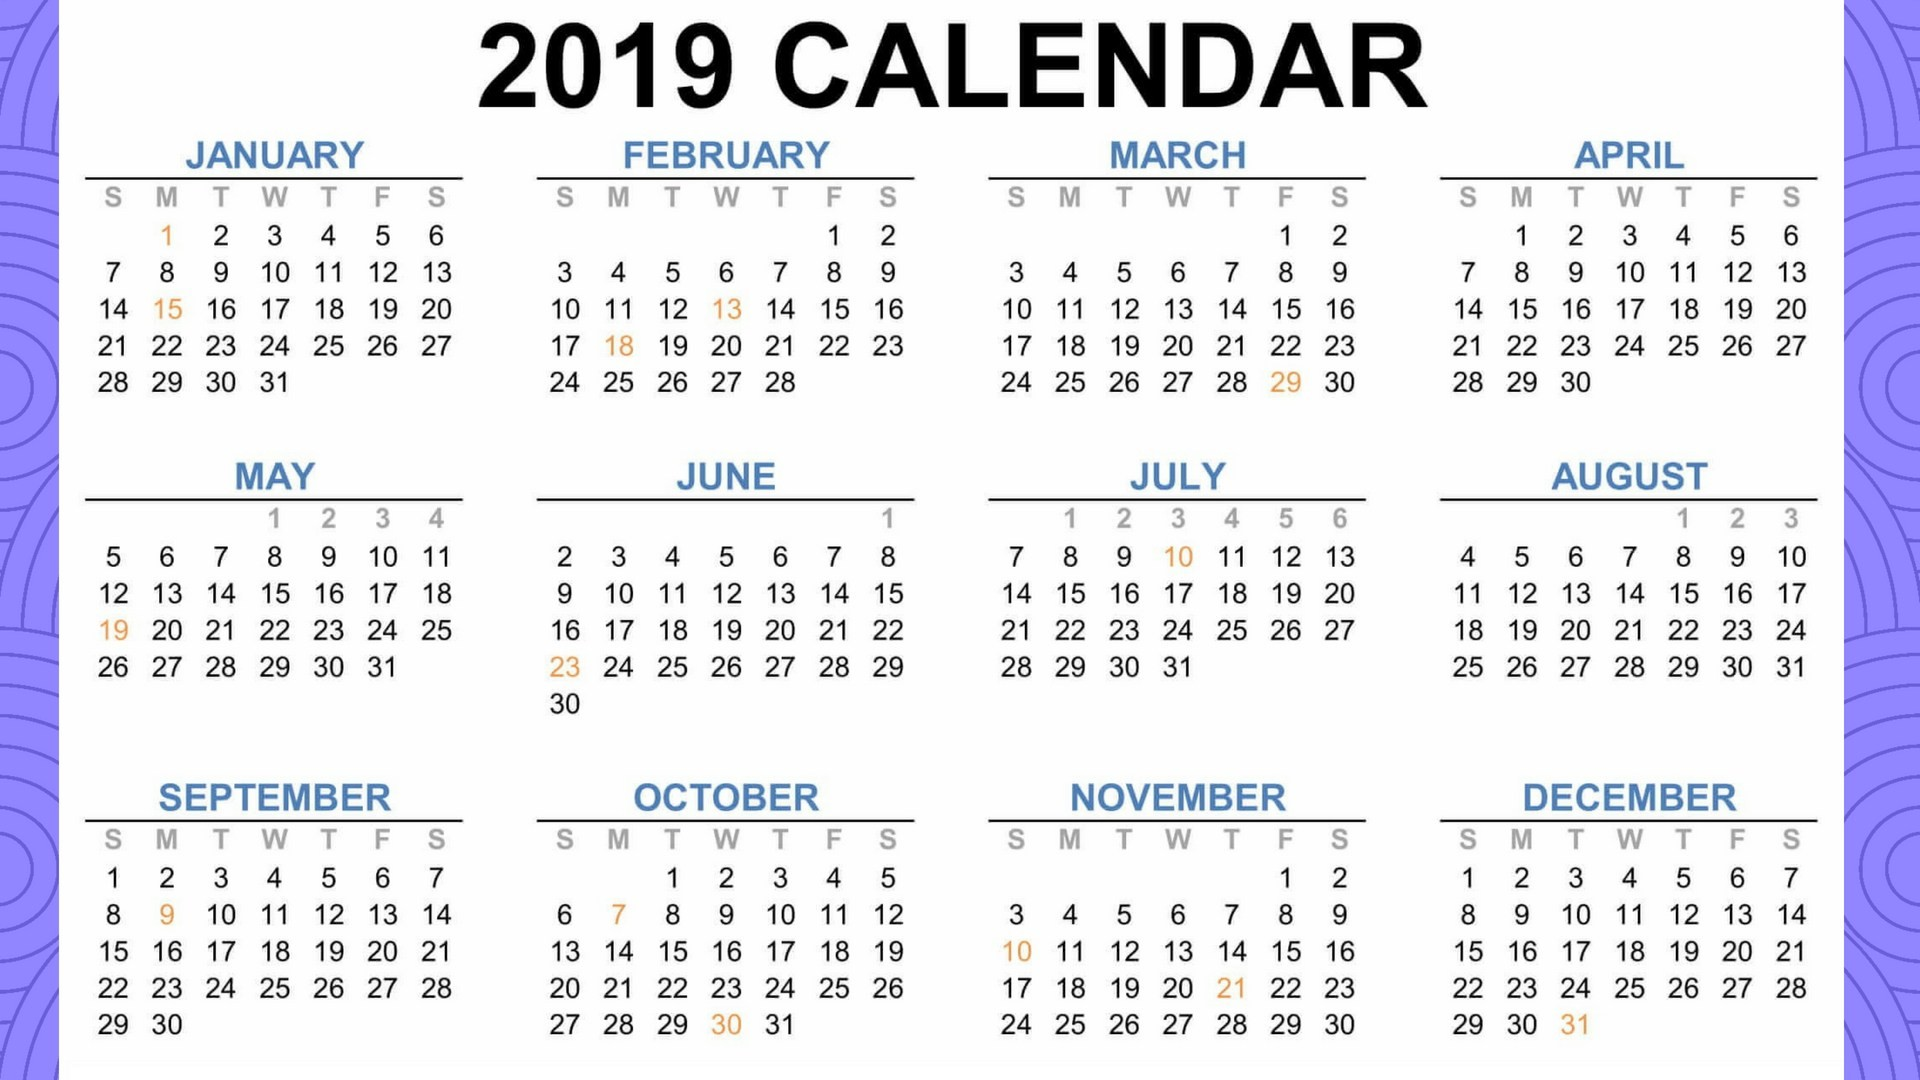 Calendar 2019 School Holiday Malaysia With Holidays Download Blank